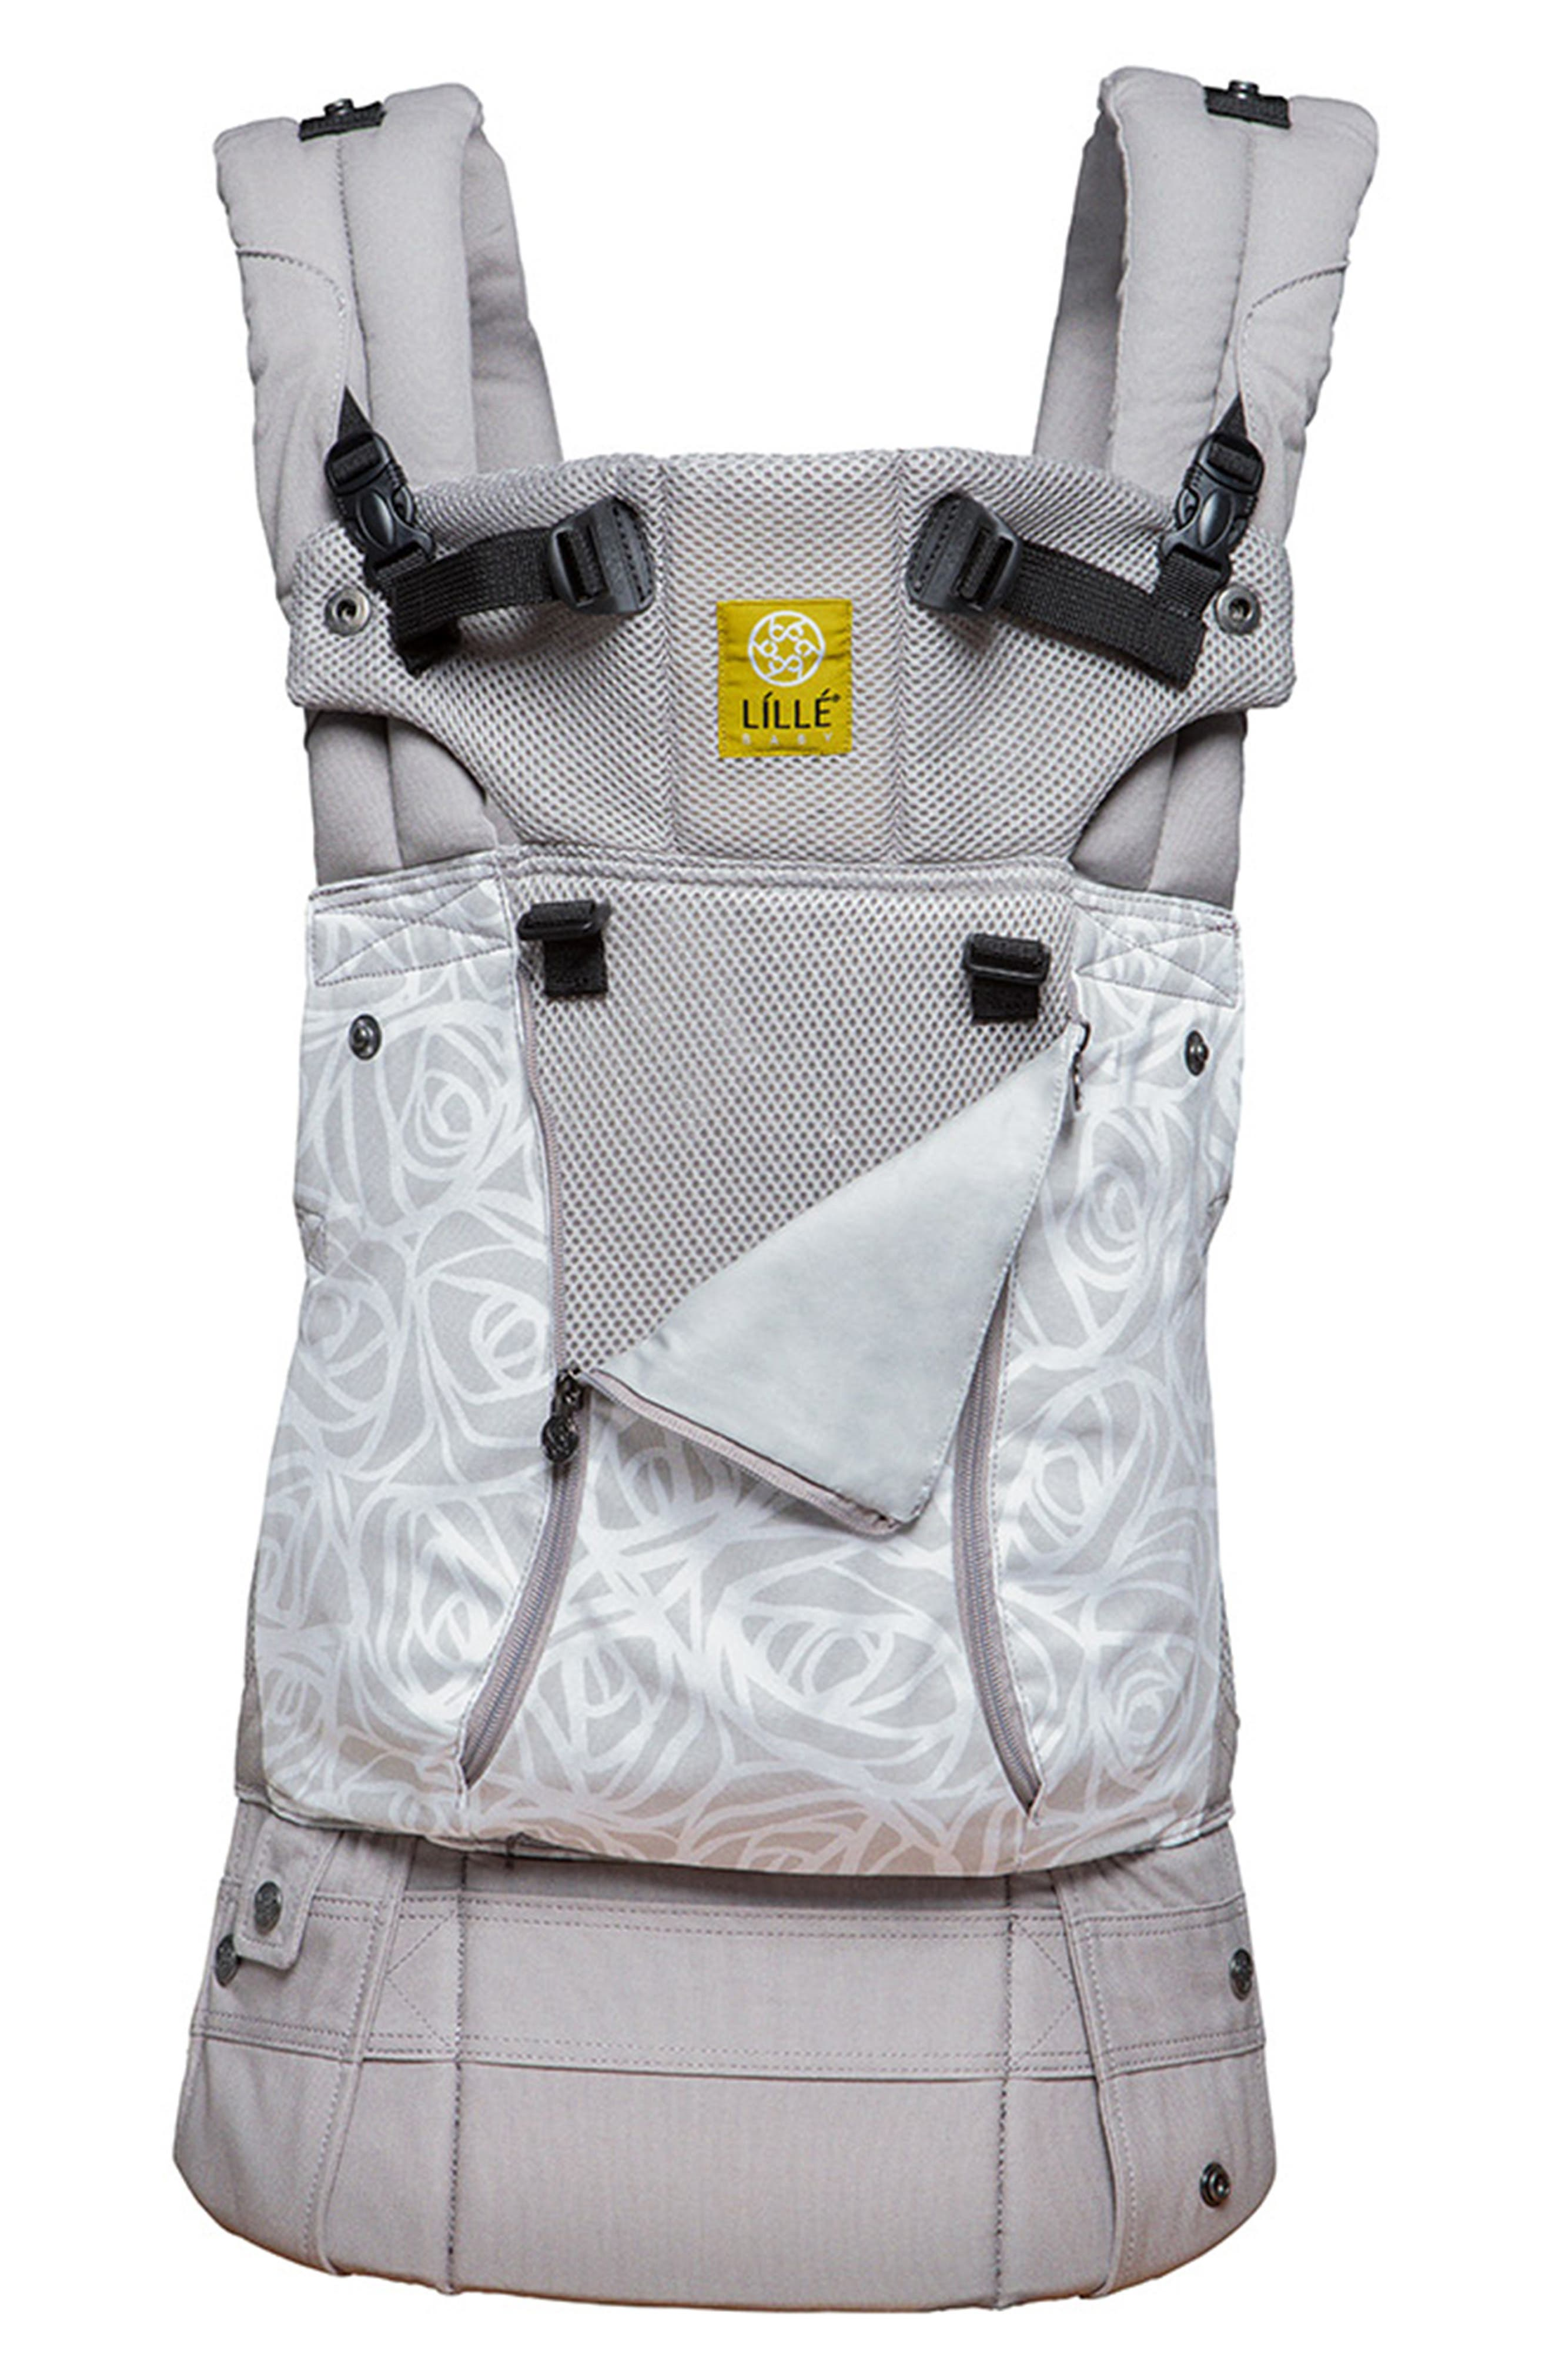 All Seasons - Frosted Rose Baby Carrier, Main, color, FROSTED ROSE